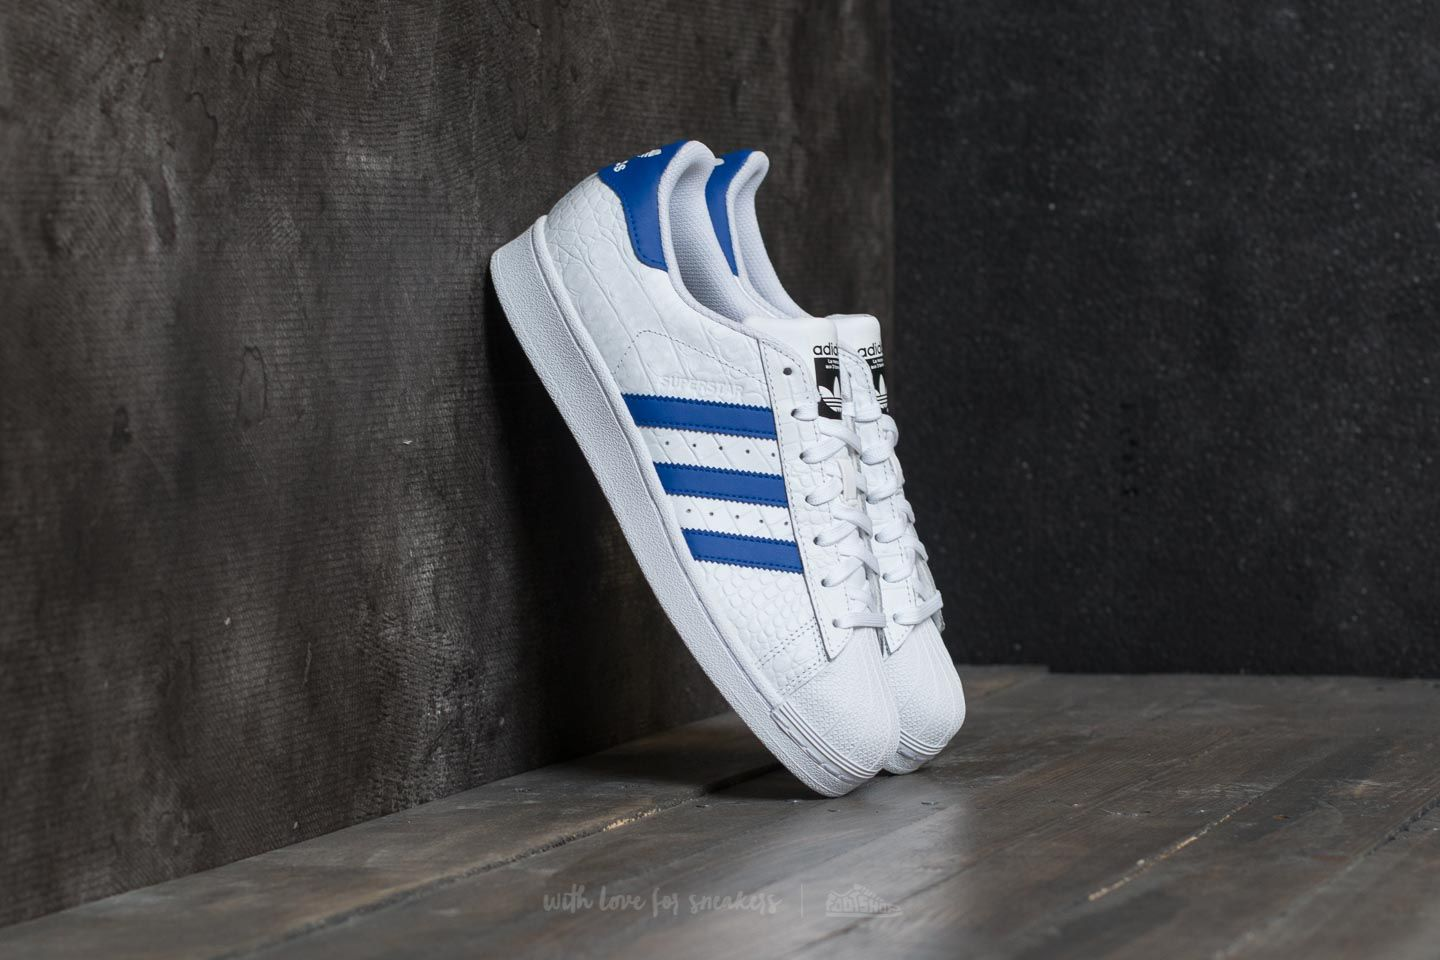 BlueFootshop Footwear Bold Superstar Adidas White Tu1FKclJ3